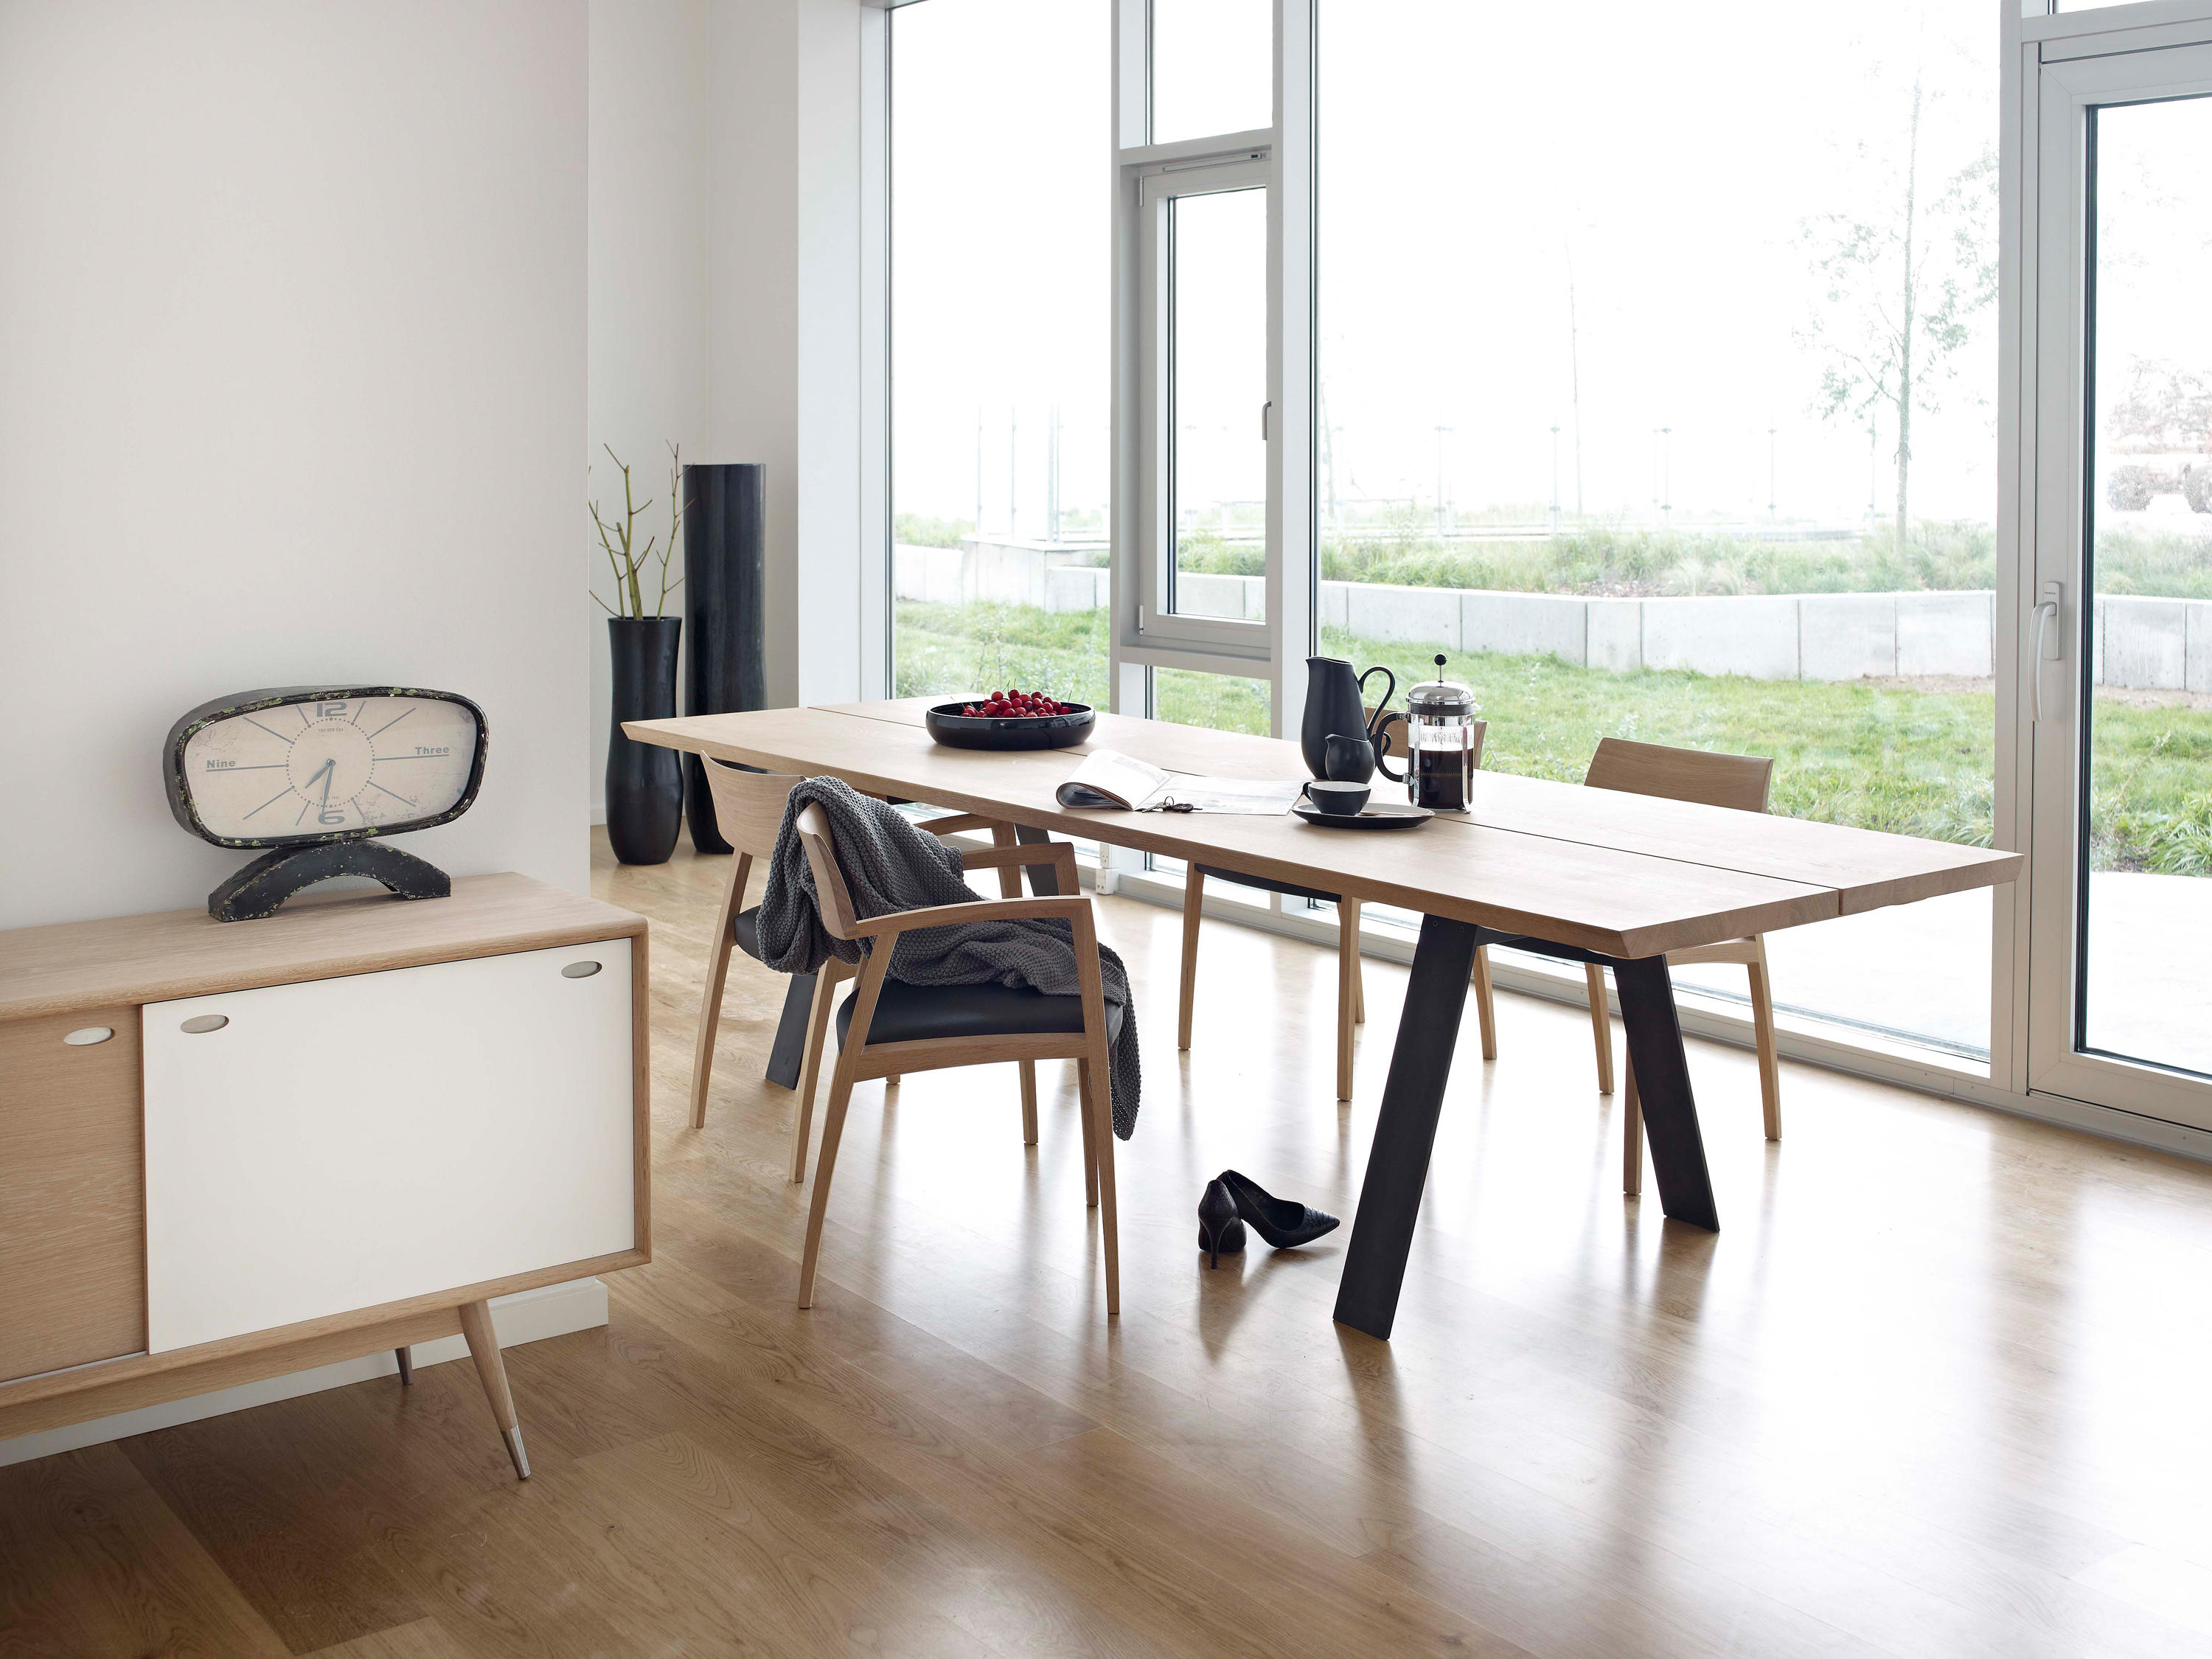 Gm 3200 plank table dining tables from naver architonic for Table salon style scandinave